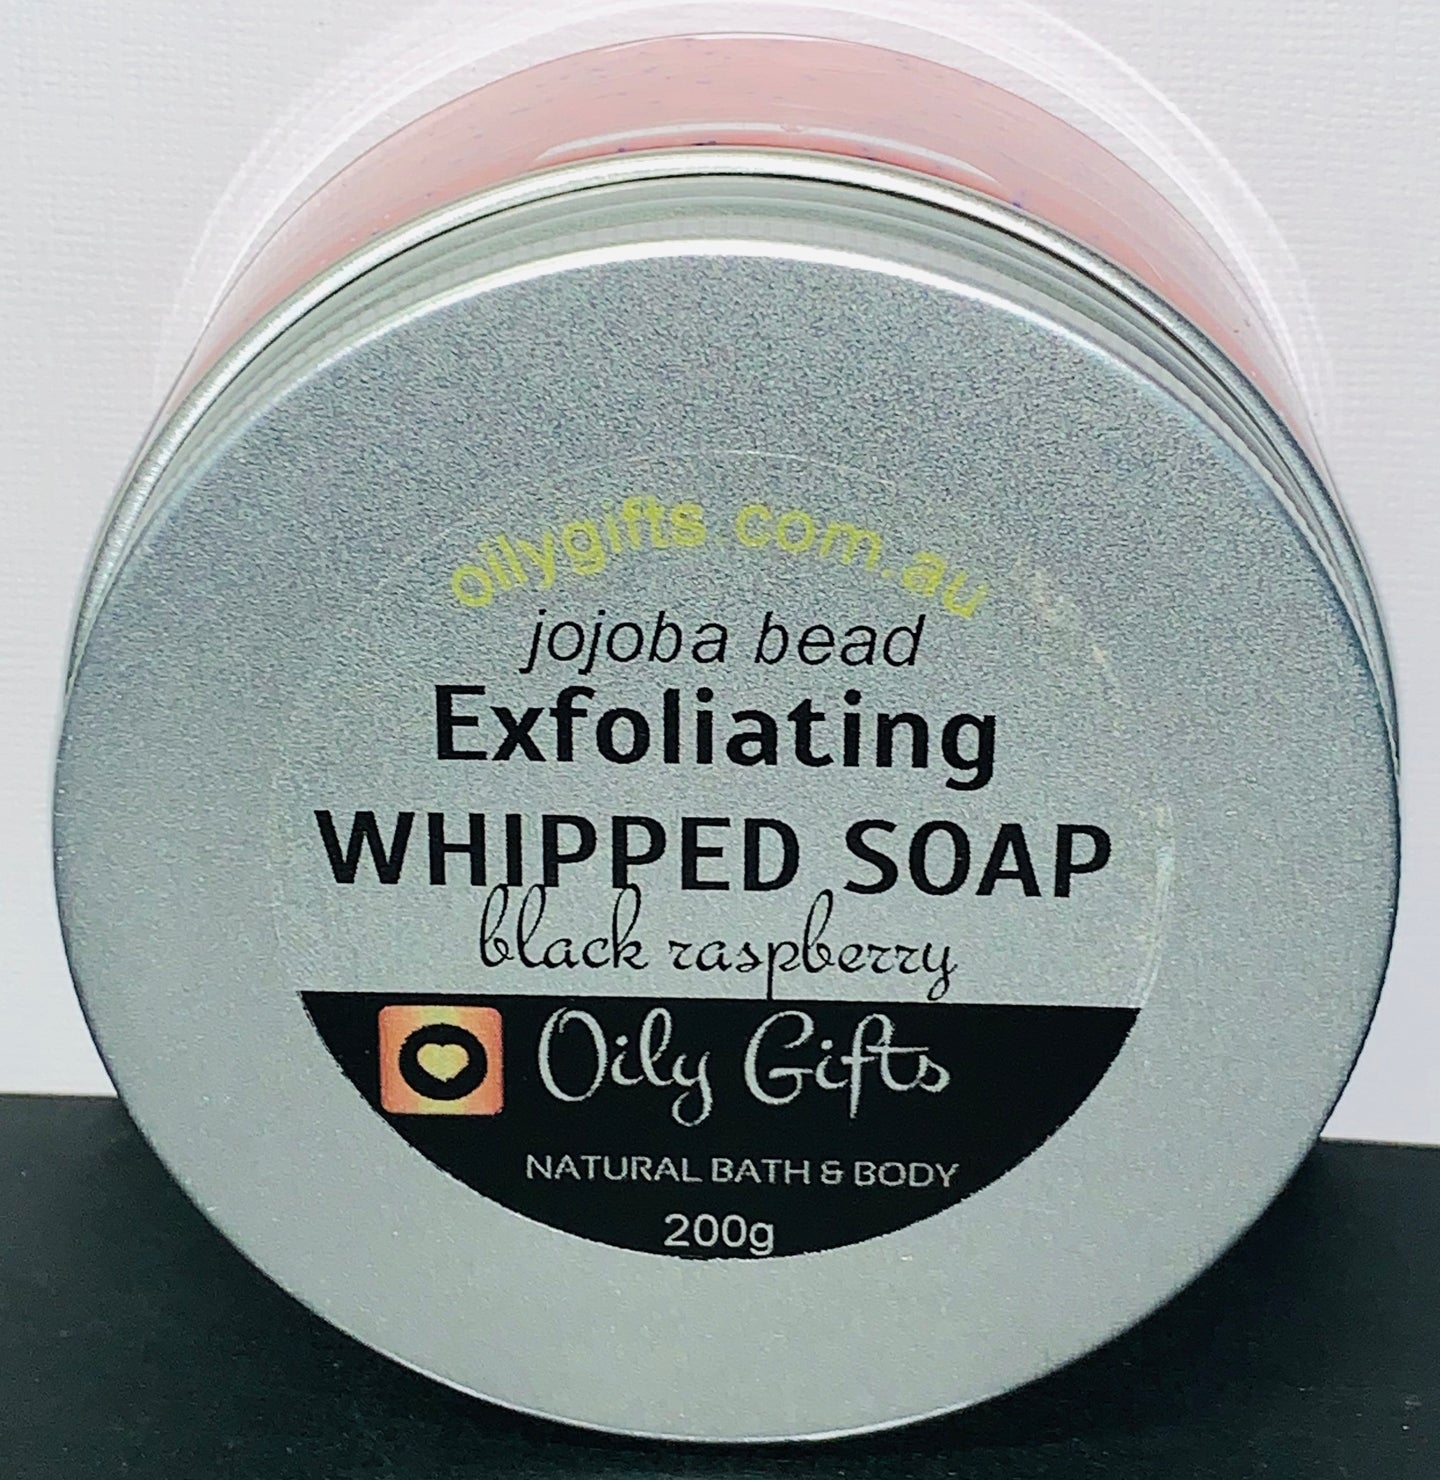 Exfoliating Whipped Soap